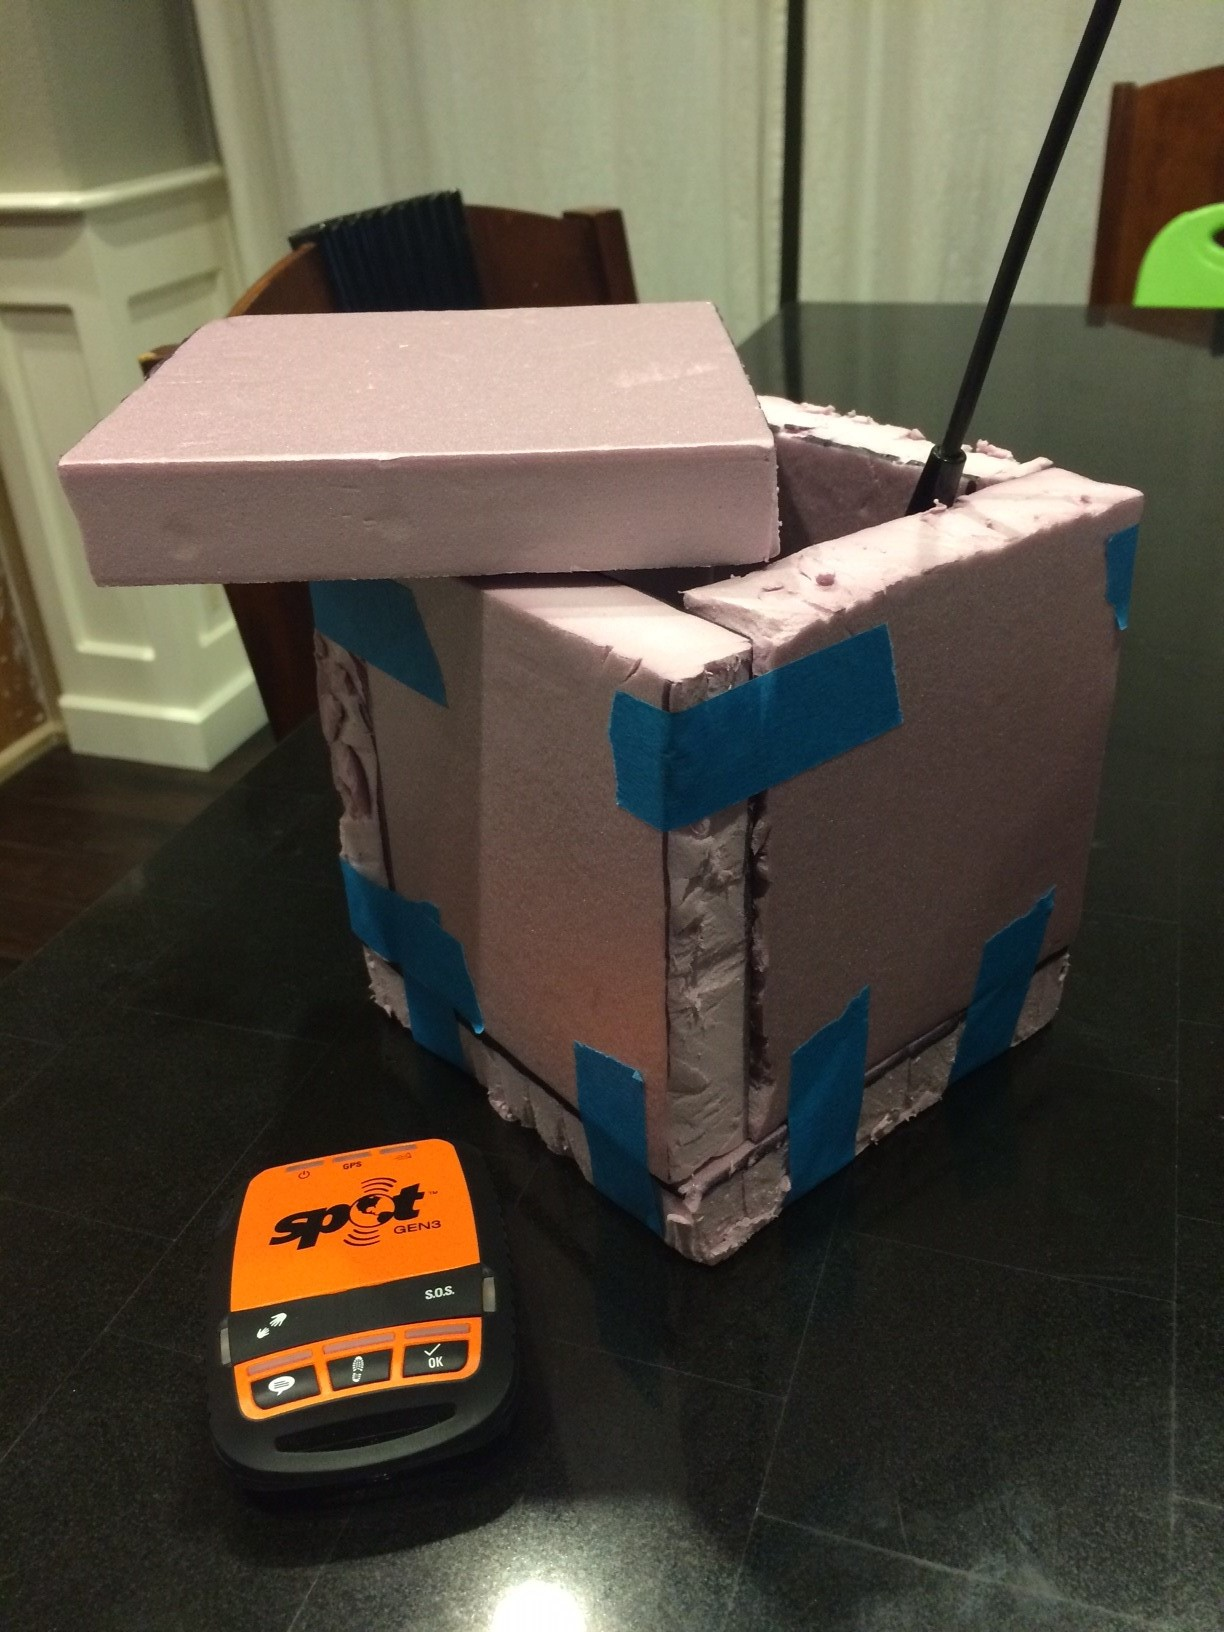 Payload Capsule v1.0 Prototype Complete!